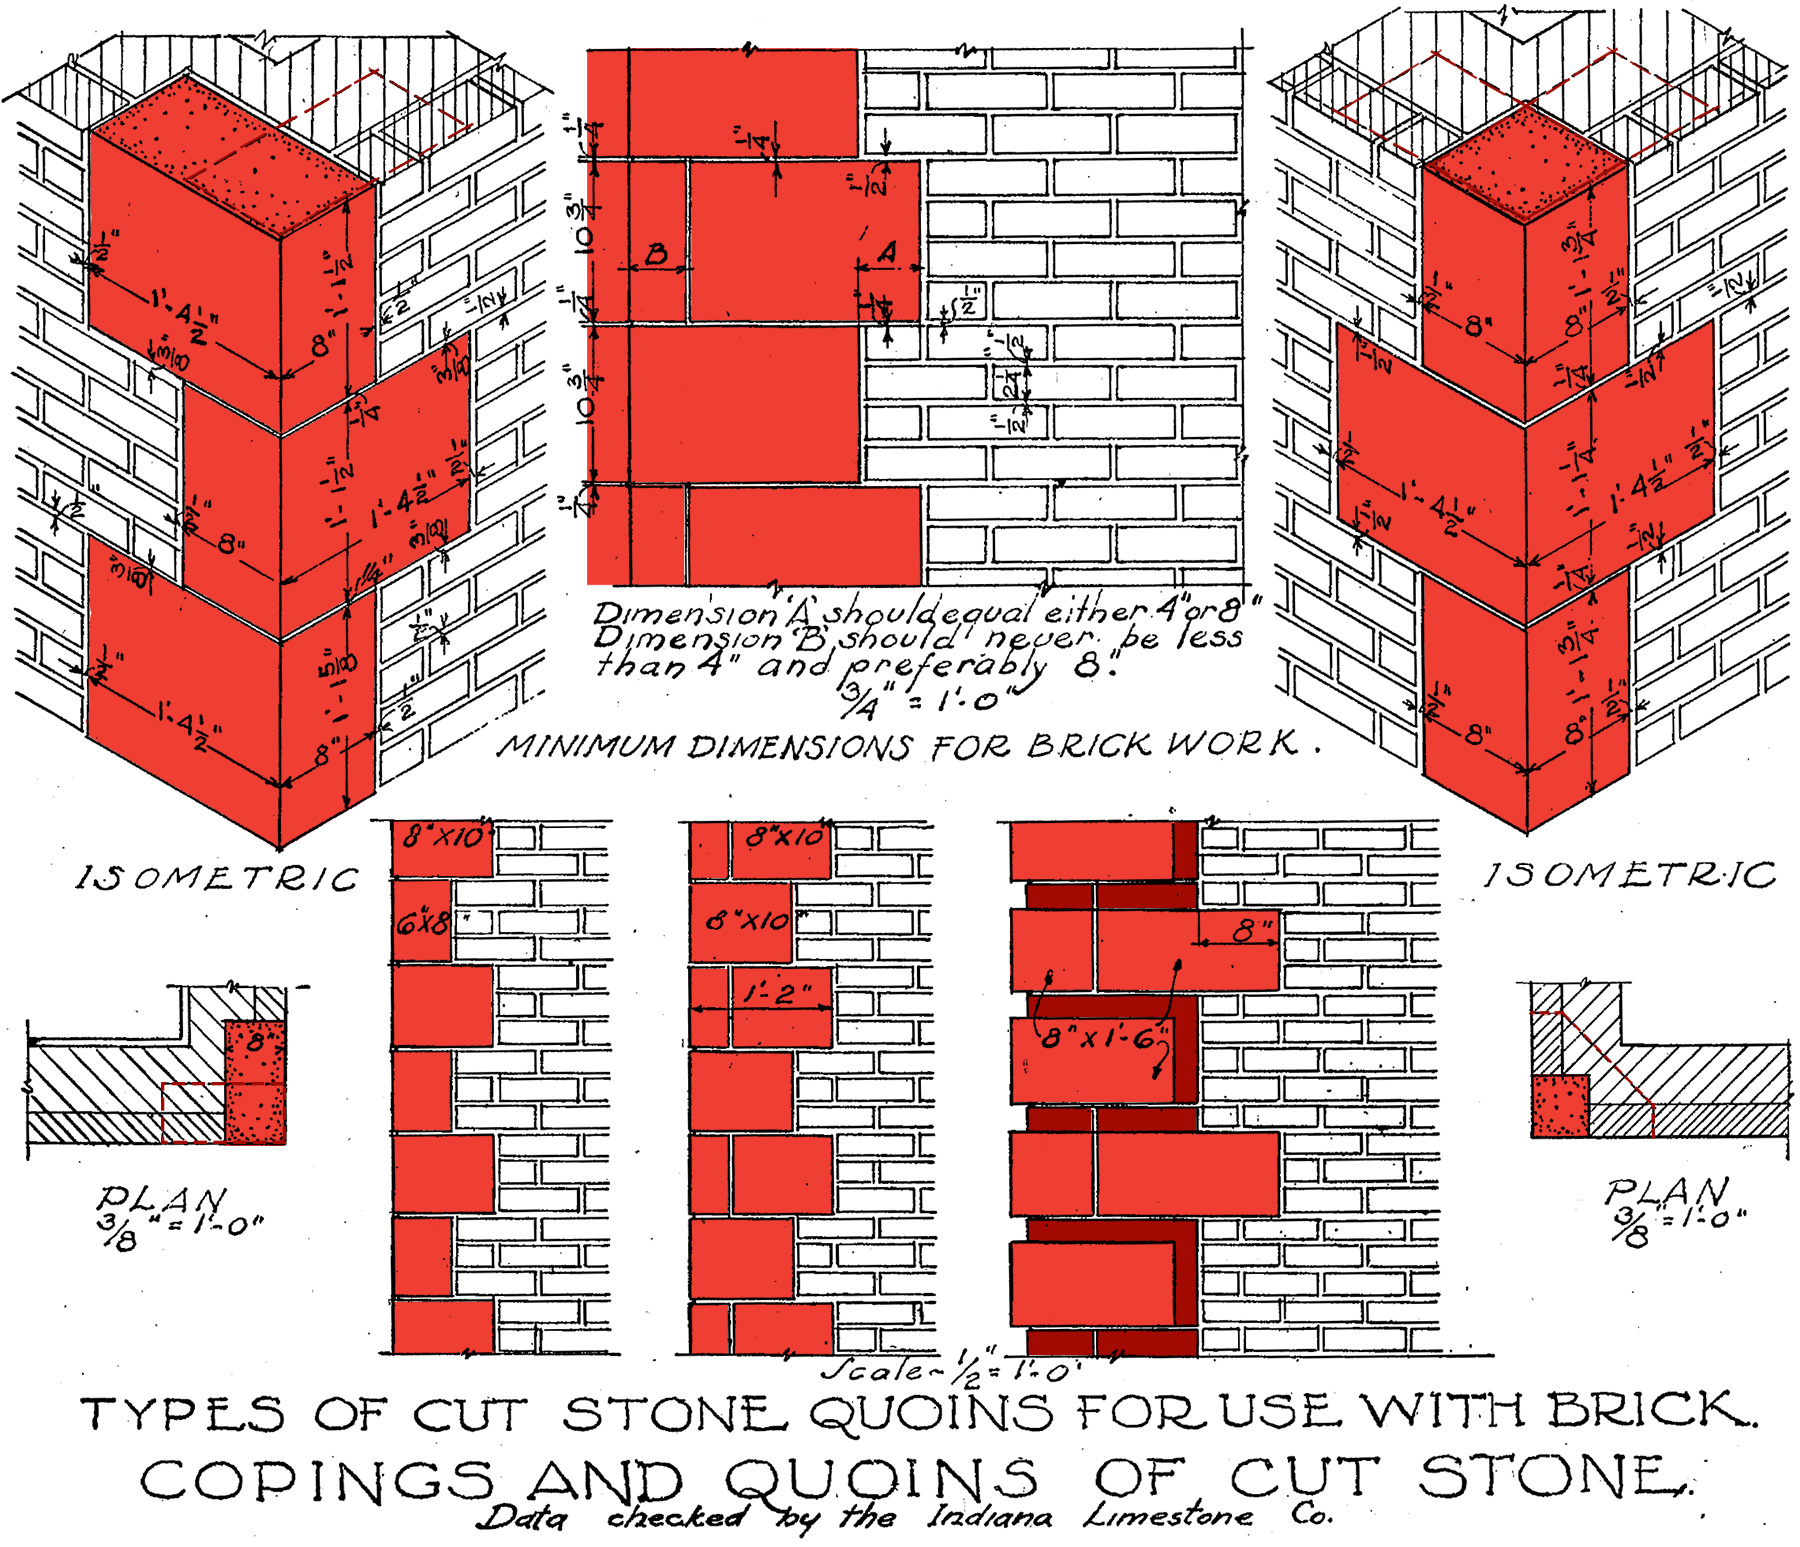 Types of cut stone quoins for use with brick